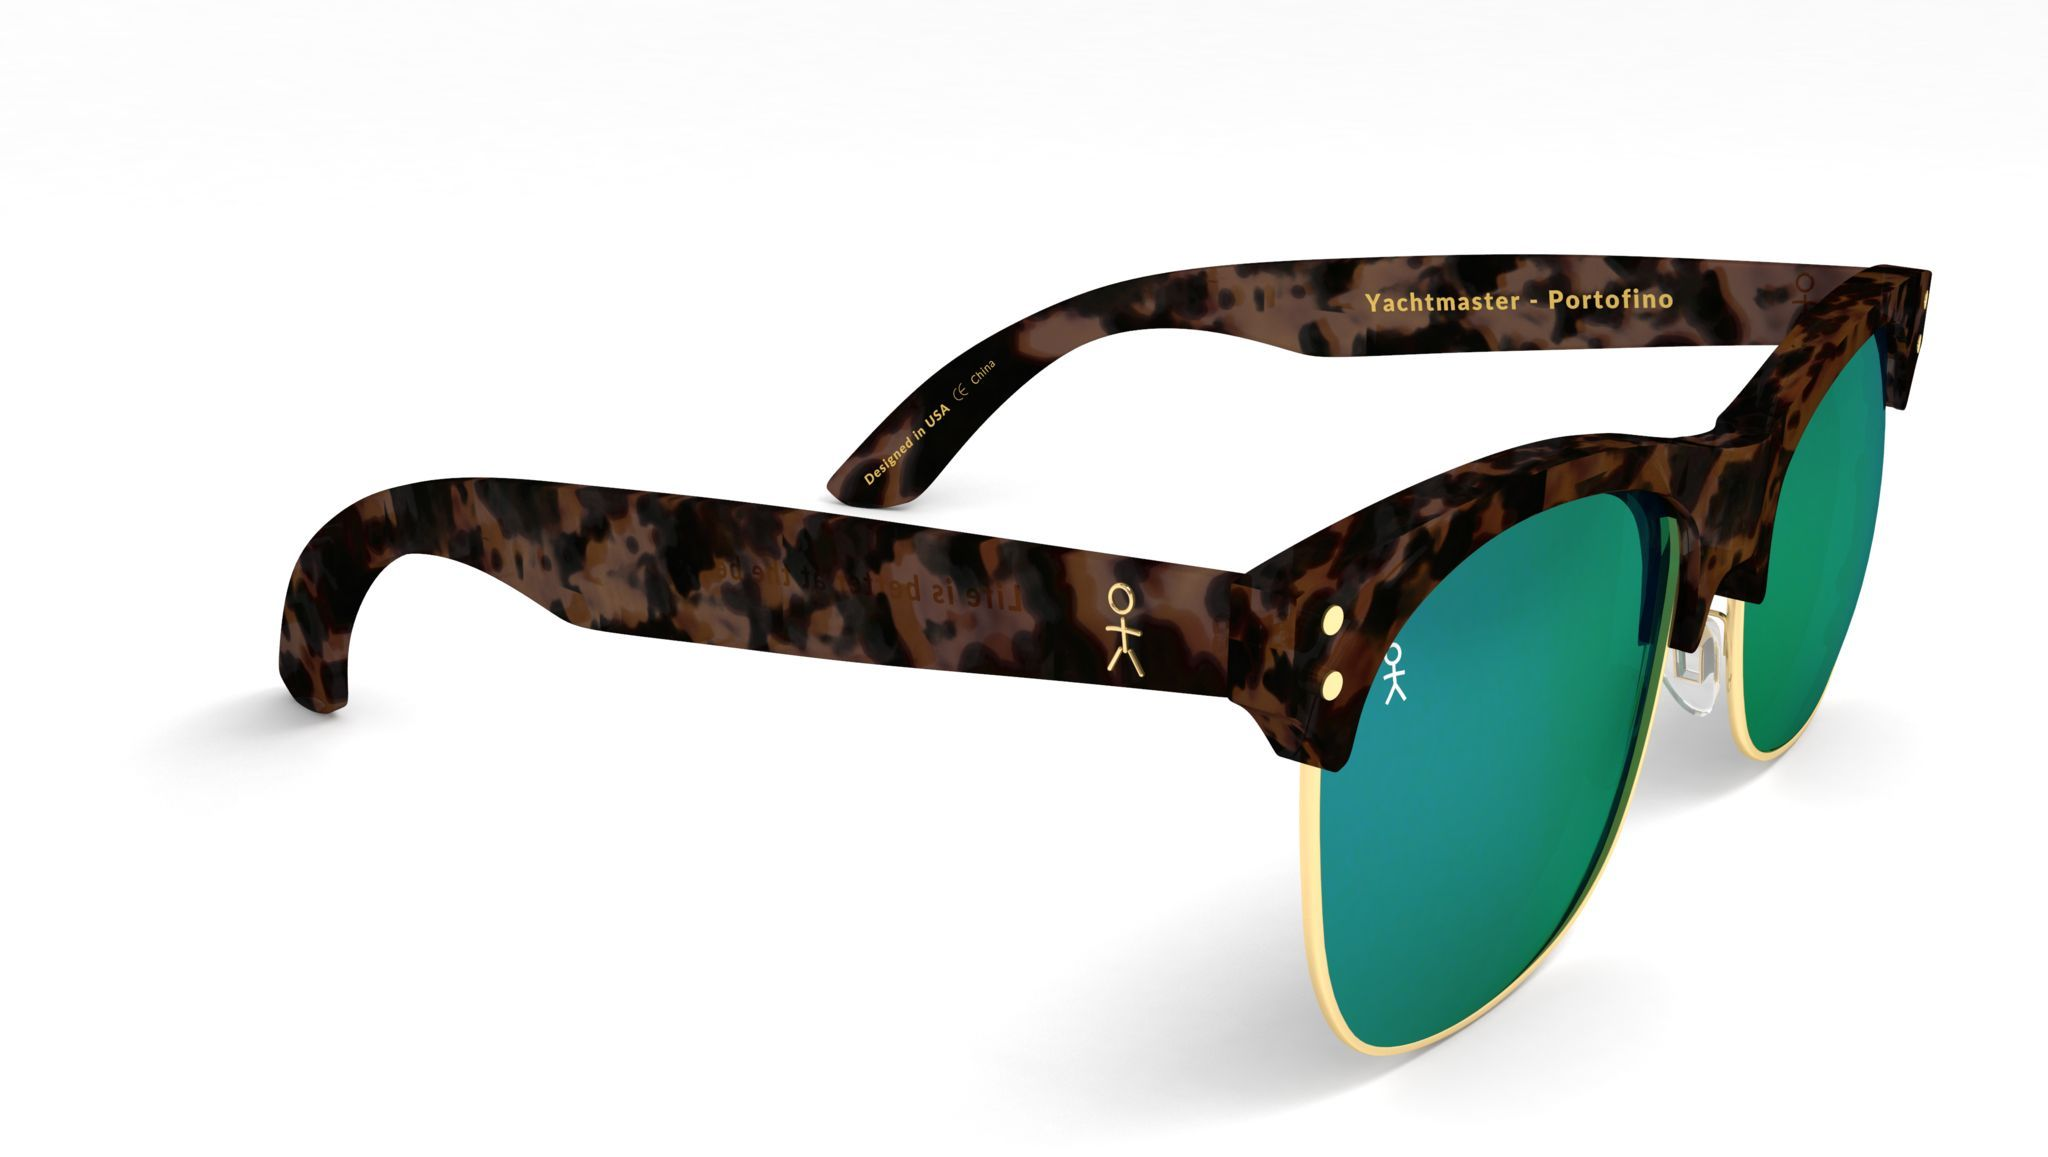 Yachtmaster - Portofino - Tortoise and Green Mirrored Sunglasses